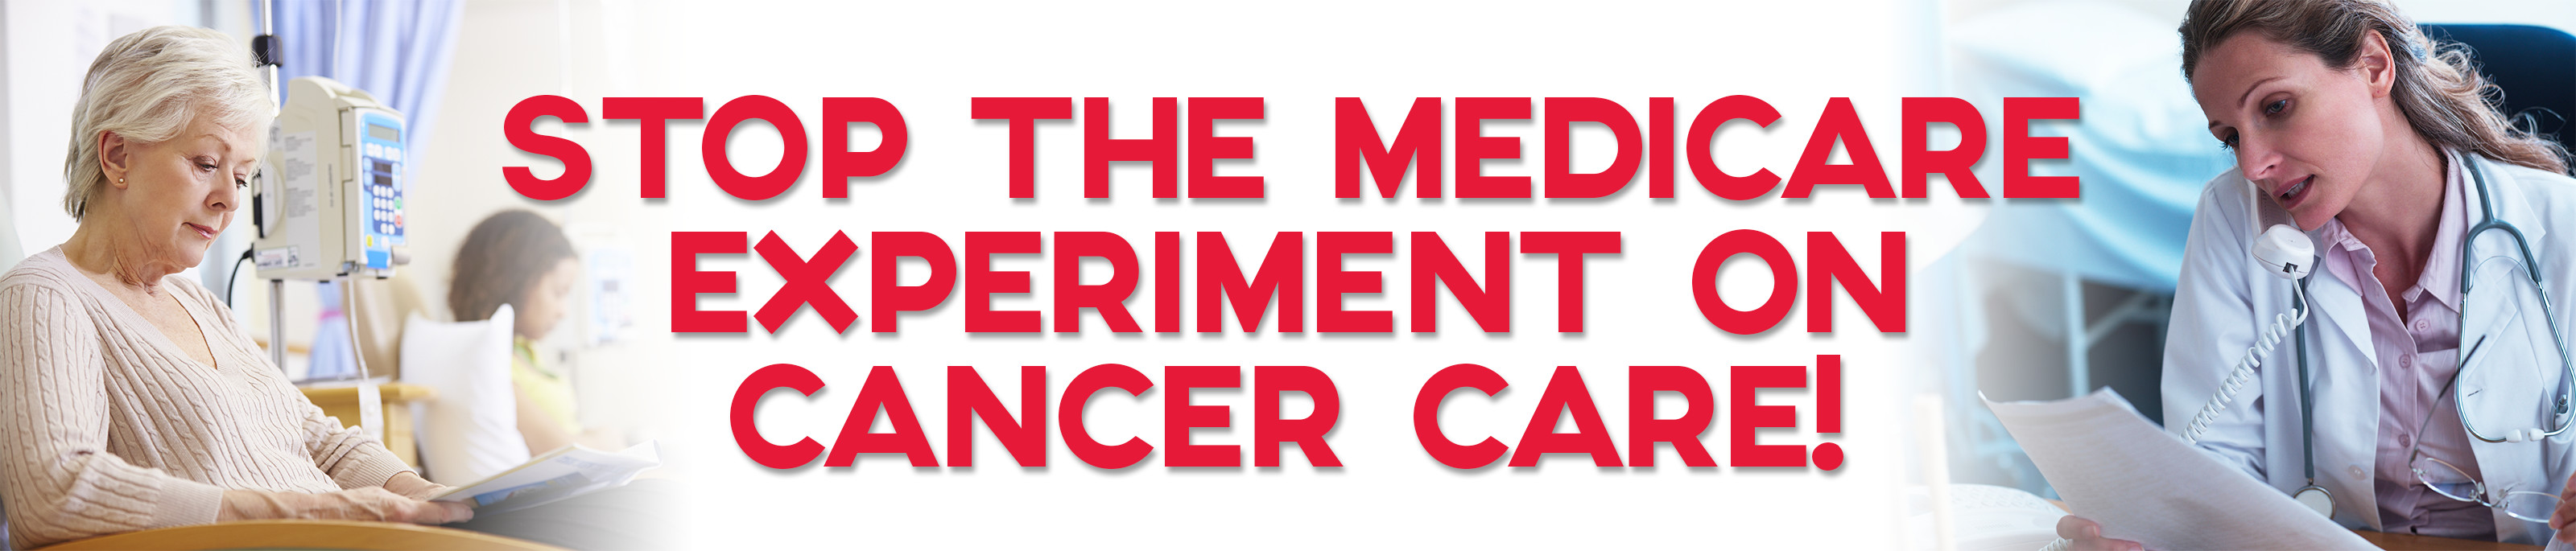 cancer experiment